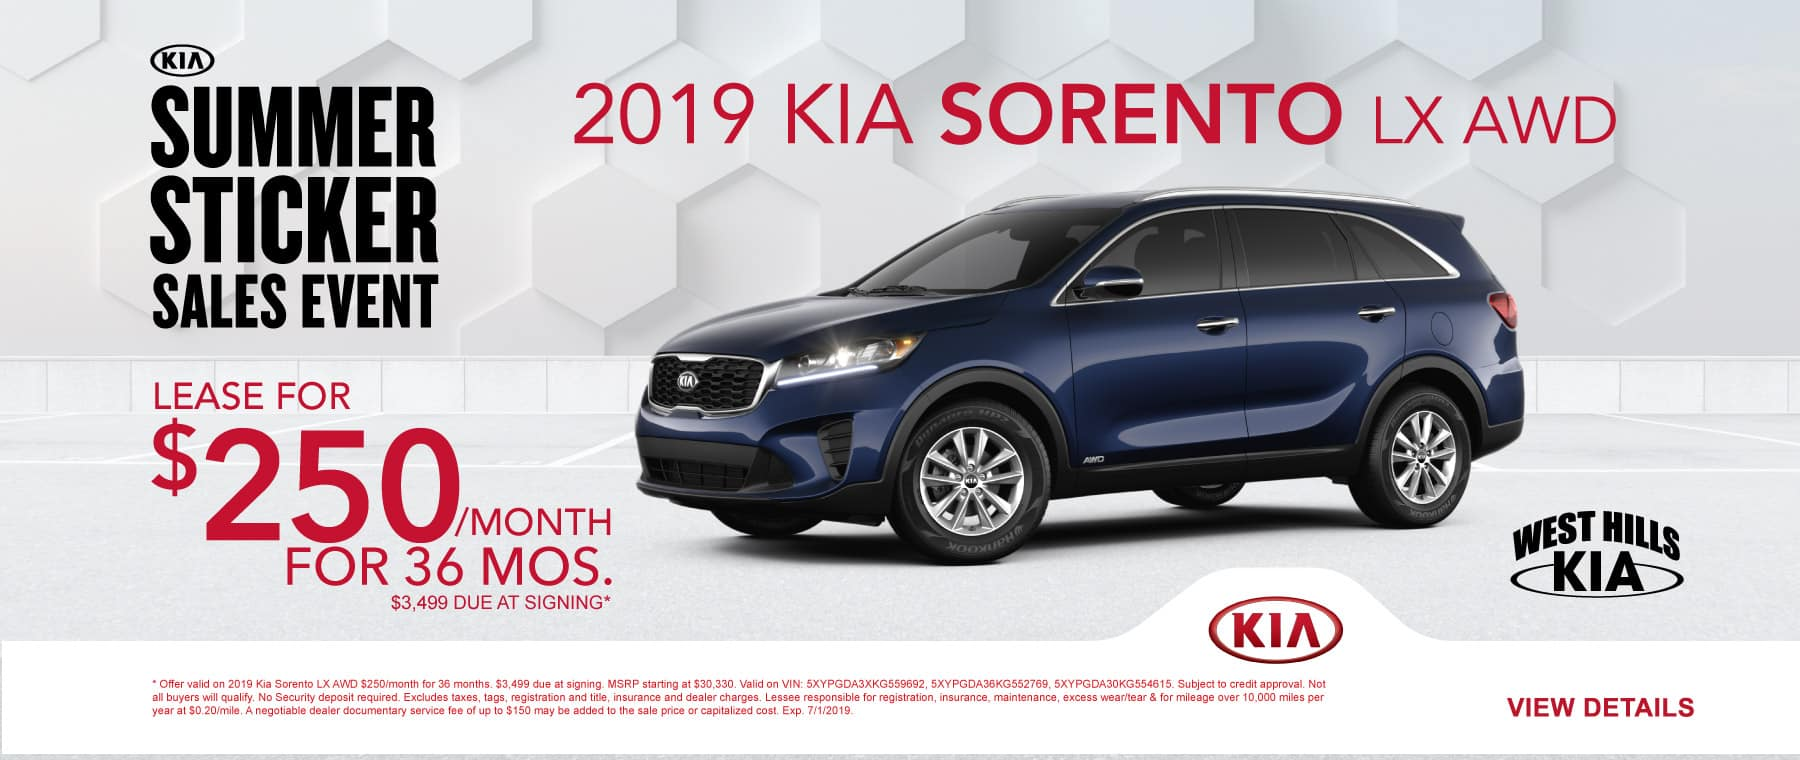 2019 Kia Sorento LX AWD  $250/month for 36 months  $3,499 Due at Signing  * Offer valid on 2019 Kia Sorento LX AWD $250/month for 36 months. $3,499 due at signing. MSRP starting at $30,330. Valid on VIN: 5XYPGDA3XKG559692, 5XYPGDA36KG552769, 5XYPGDA30KG554615. Subject to credit approval. Not all buyers will qualify. No Security deposit required. Excludes taxes, tags, registration and title, insurance and dealer charges. Lessee responsible for registration, insurance, maintenance, excess wear/tear & for mileage over 10,000 miles per year at $0.20/mile. A negotiable dealer documentary service fee of up to $150 may be added to the sale price or capitalized cost. Exp. 7/1/2019.